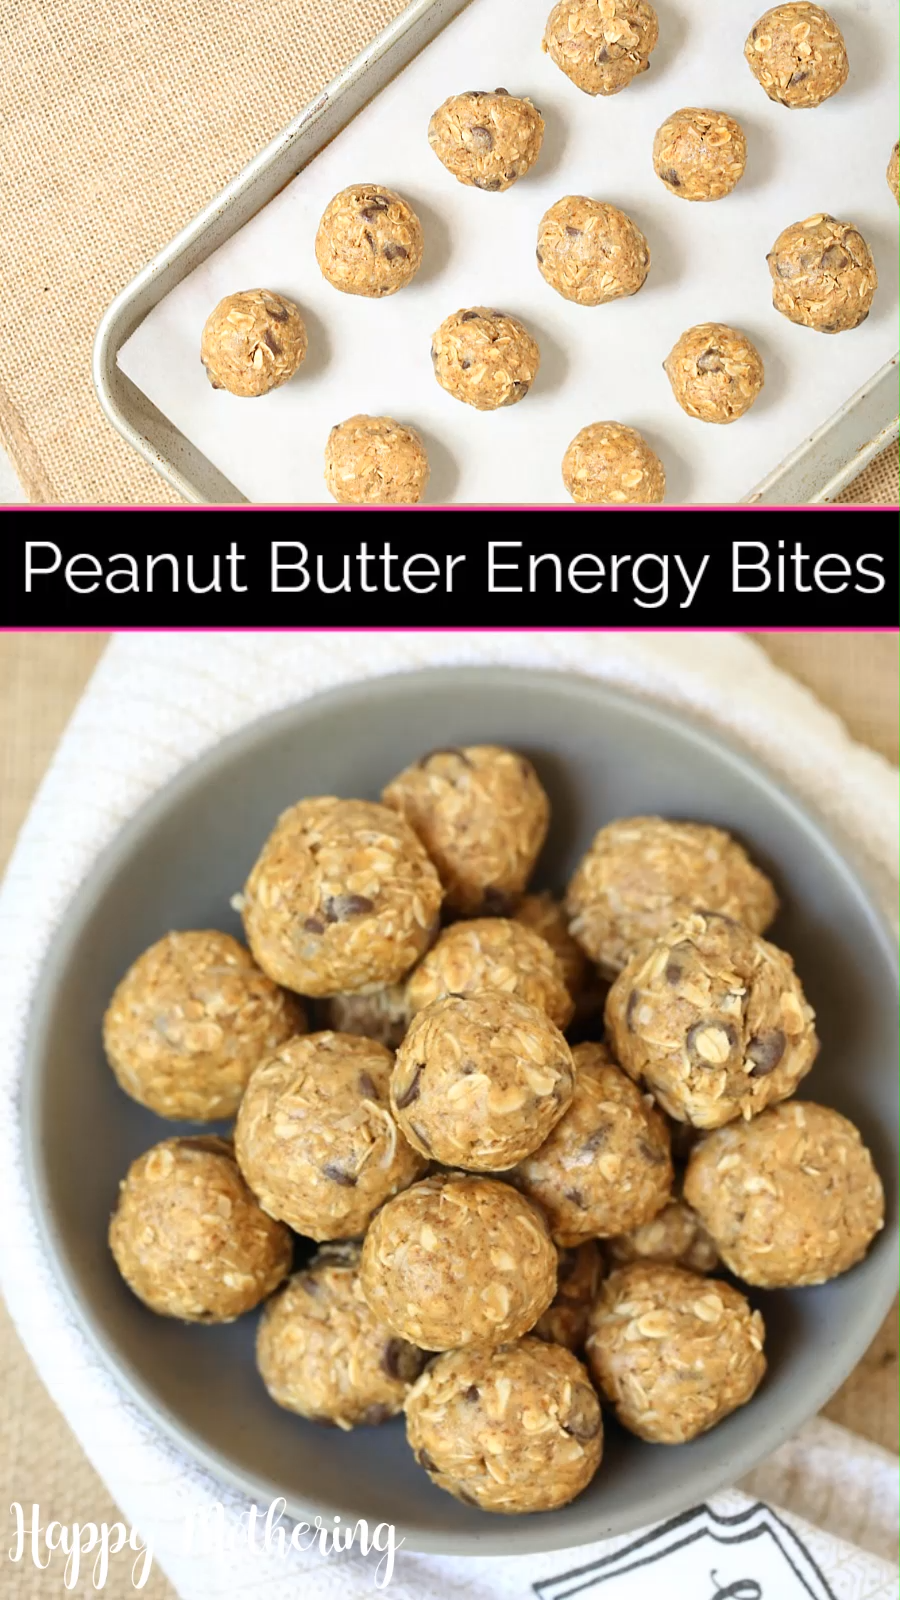 No Bake Peanut Butter Energy Bites Are you looking for an easy peanut butter energy bites recipe for your family? This gluten free no bake snack is simple, delicious and always a hit! These healthy power balls only have 7 ingredients, including oatmeal, coconut, chocolate, flax seed, peanut butter, coconut sugar and honey. Watch the video with step by step instructions at happy-.